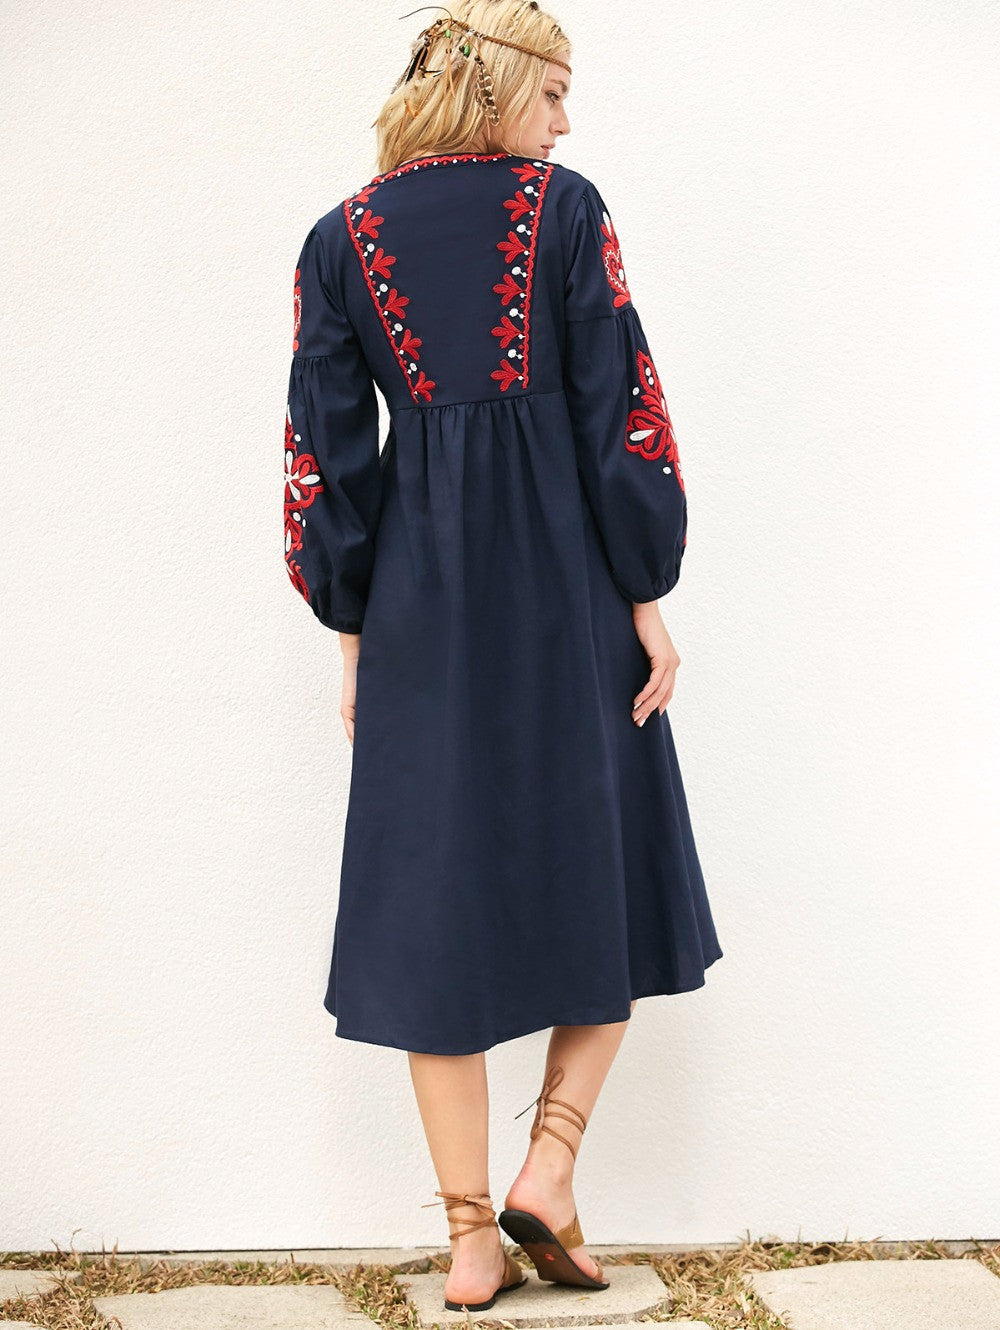 Best Seller! Floral Embroidery Tassel Dress